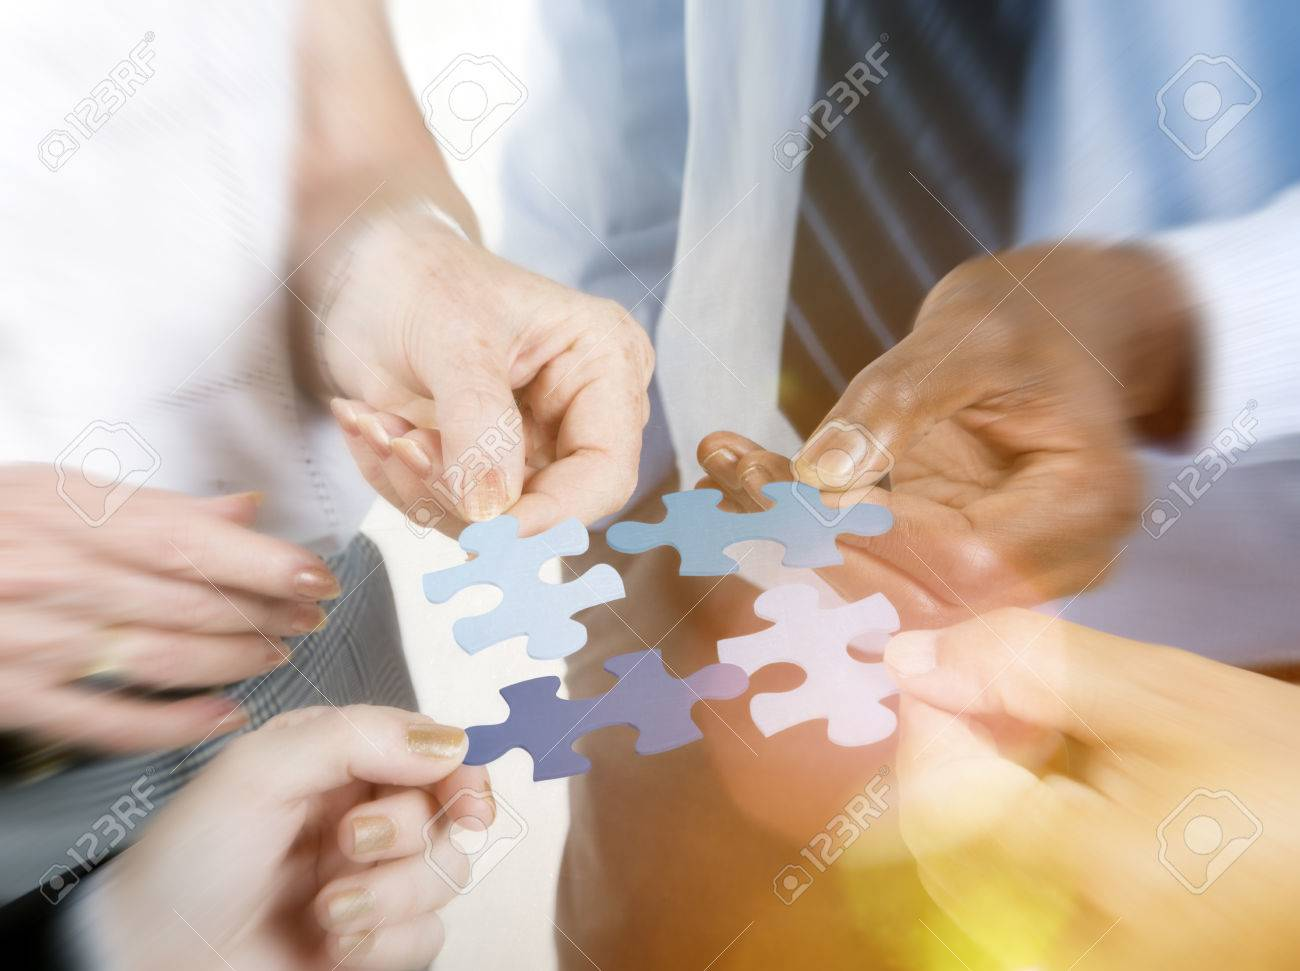 Business Connection Corporate Team Jigsaw Puzzle Concept - 51833030